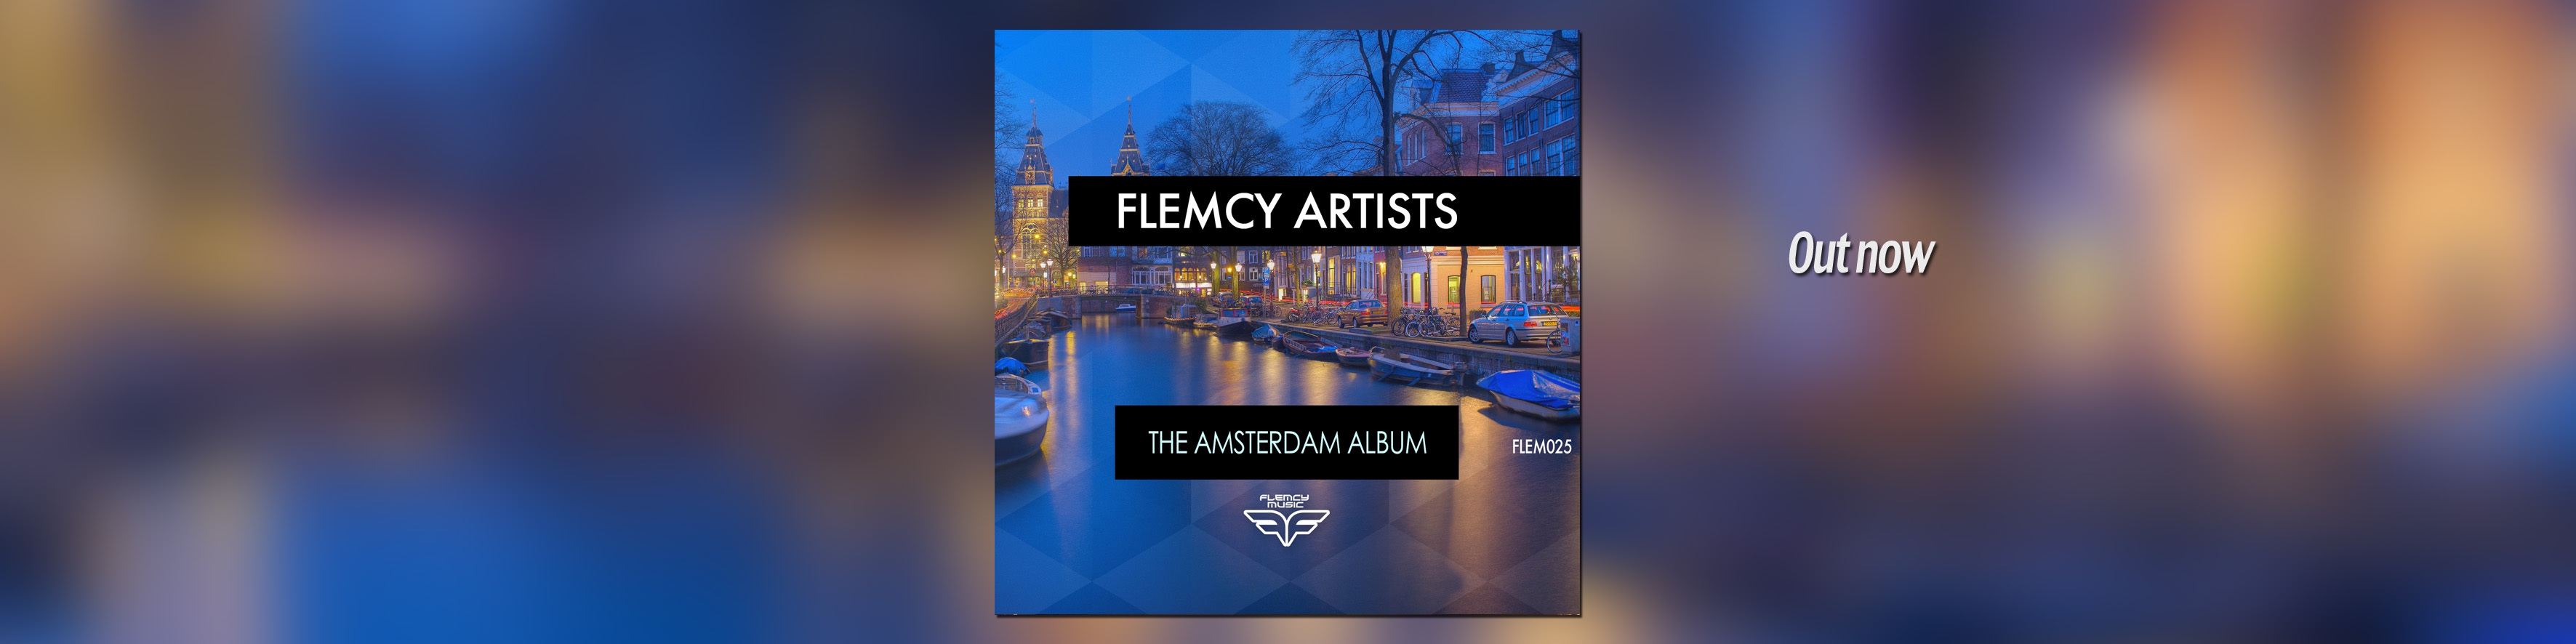 Flemcy slider banner Amsterdam album slider OUT NOW